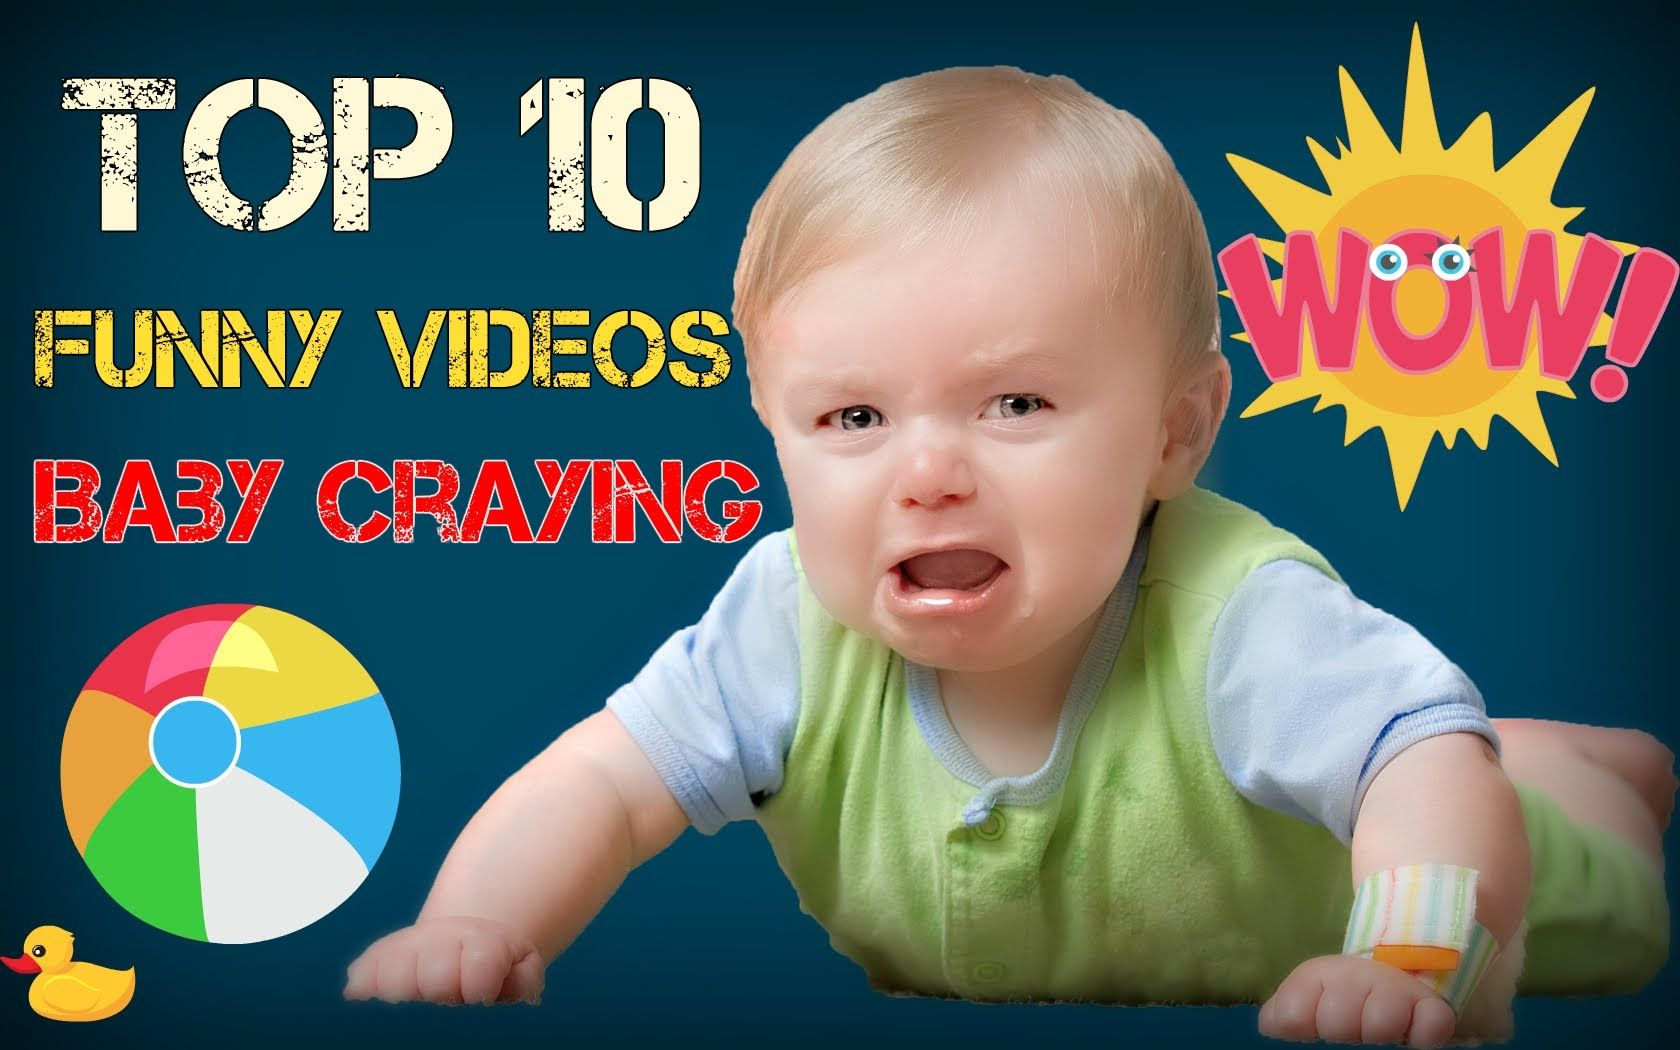 Uncategorized Funny Toddler Videos funny baby videos crying 2016 for kids httpswww httpswww